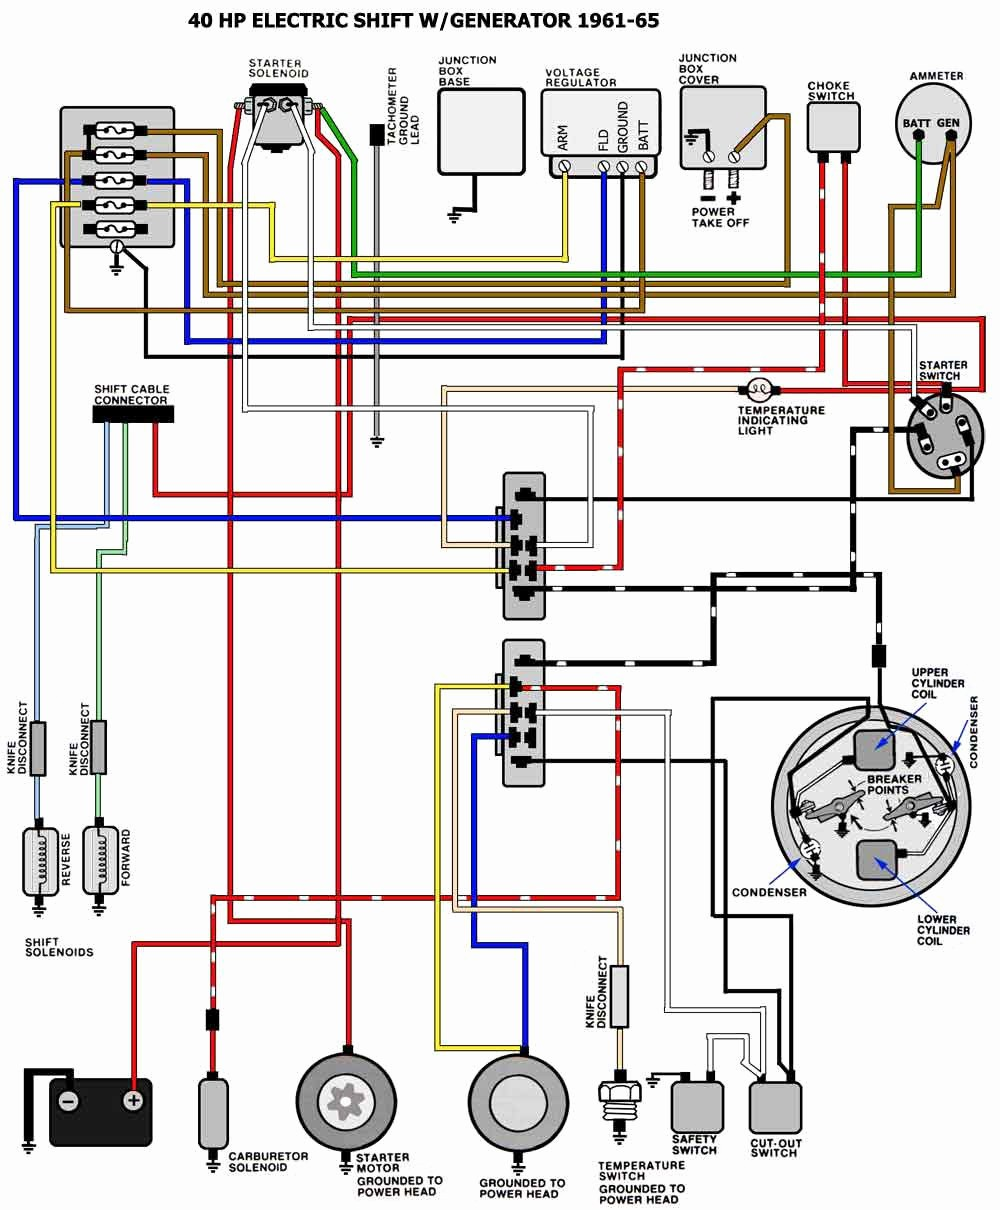 Suzuki 40Hp Outboard Dt40 Wiring Diagram from i2.wp.com